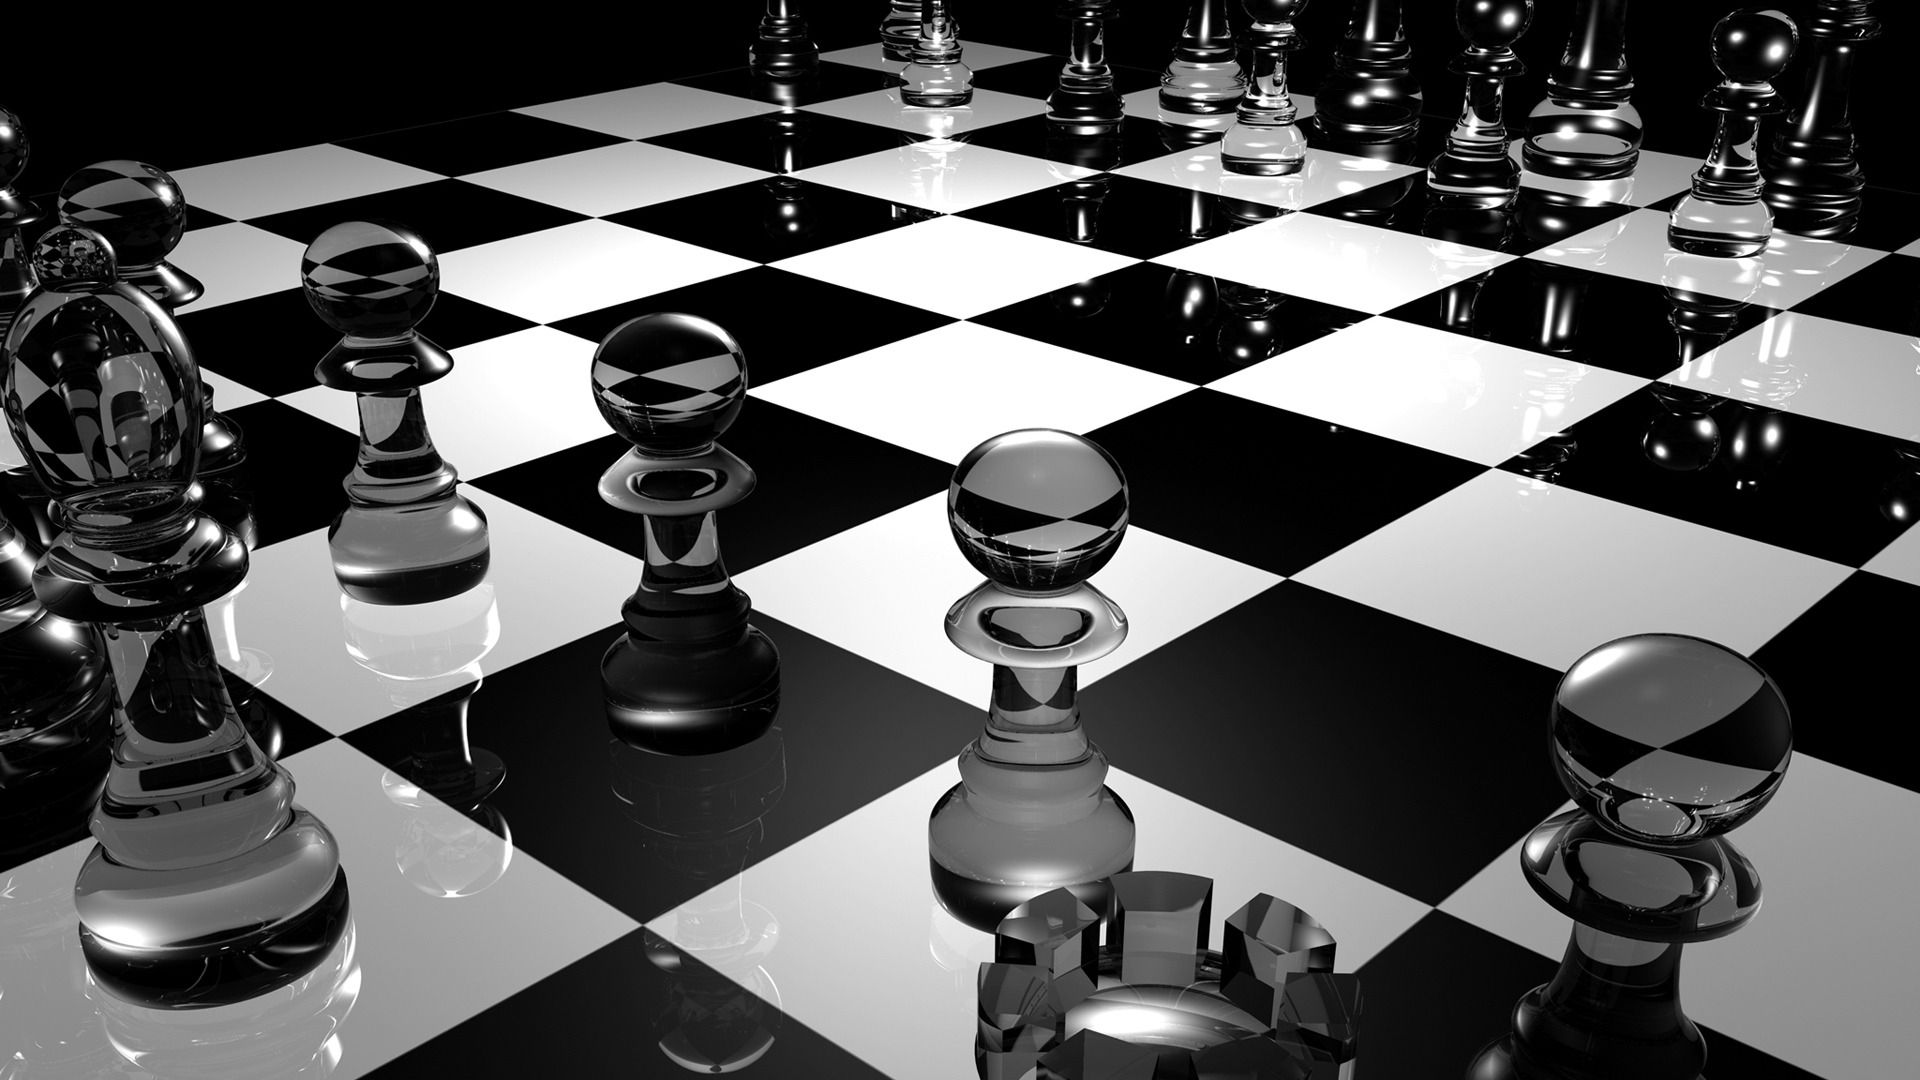 3D Chess Board Black and white wallpaper, Chess board